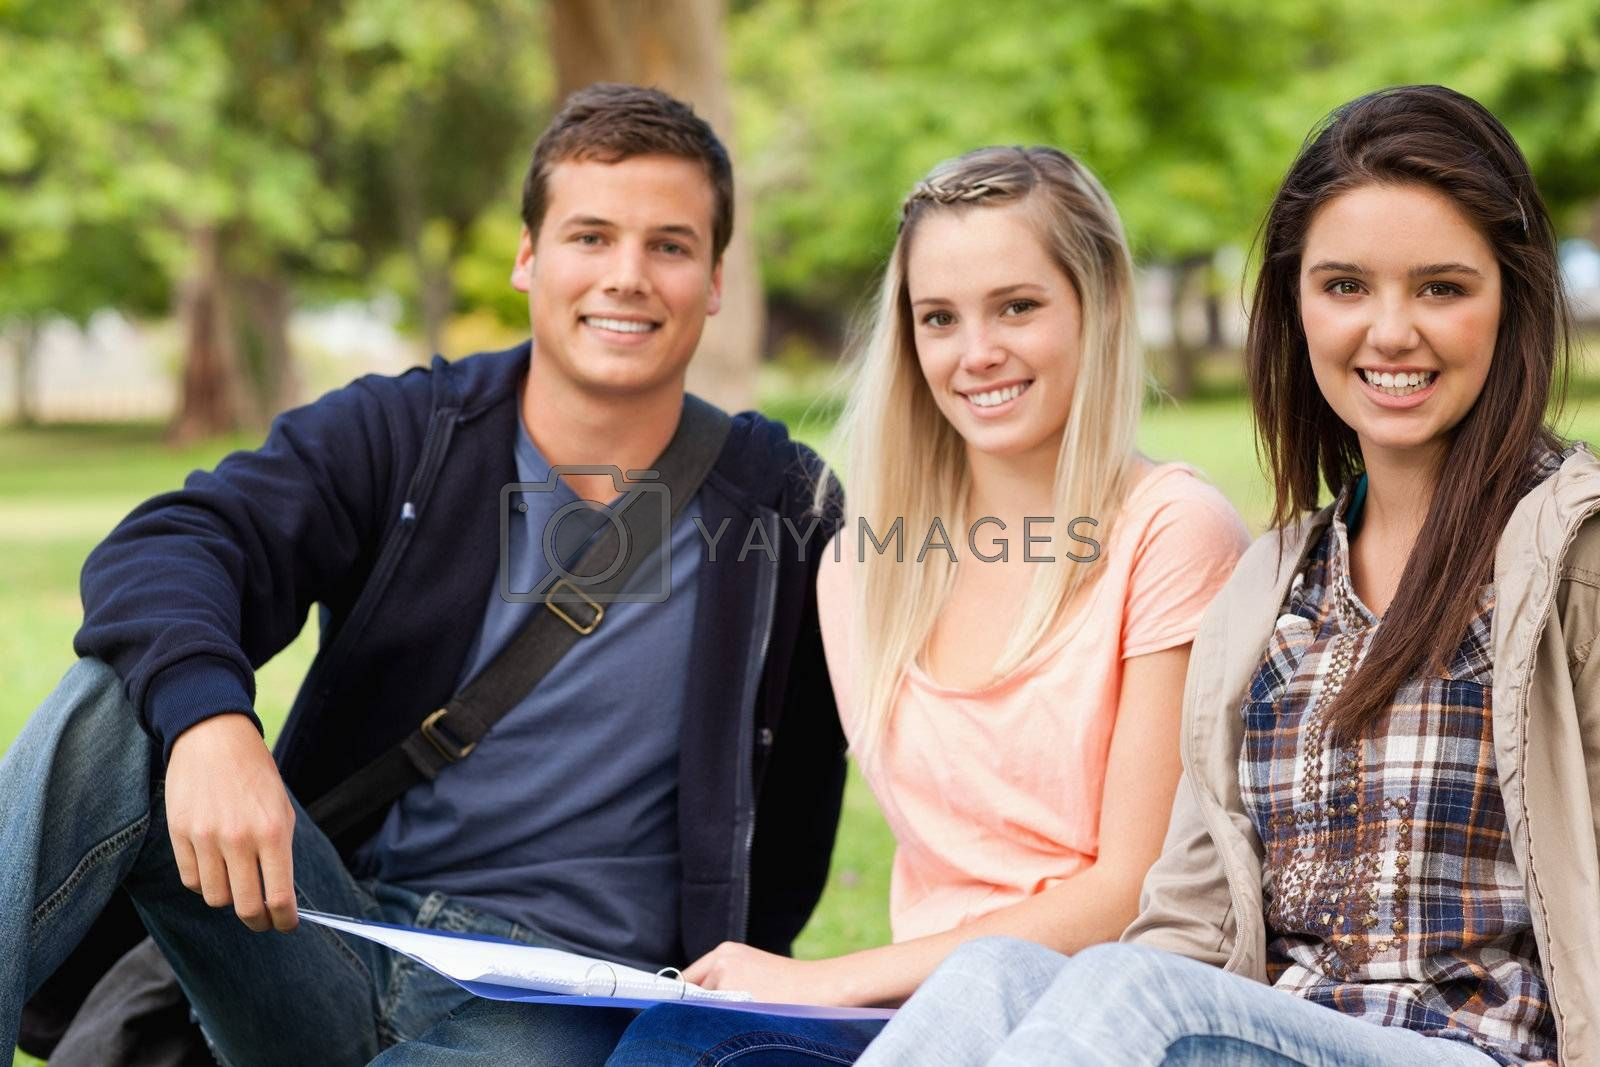 Portrait of students studying together while sitting in a park